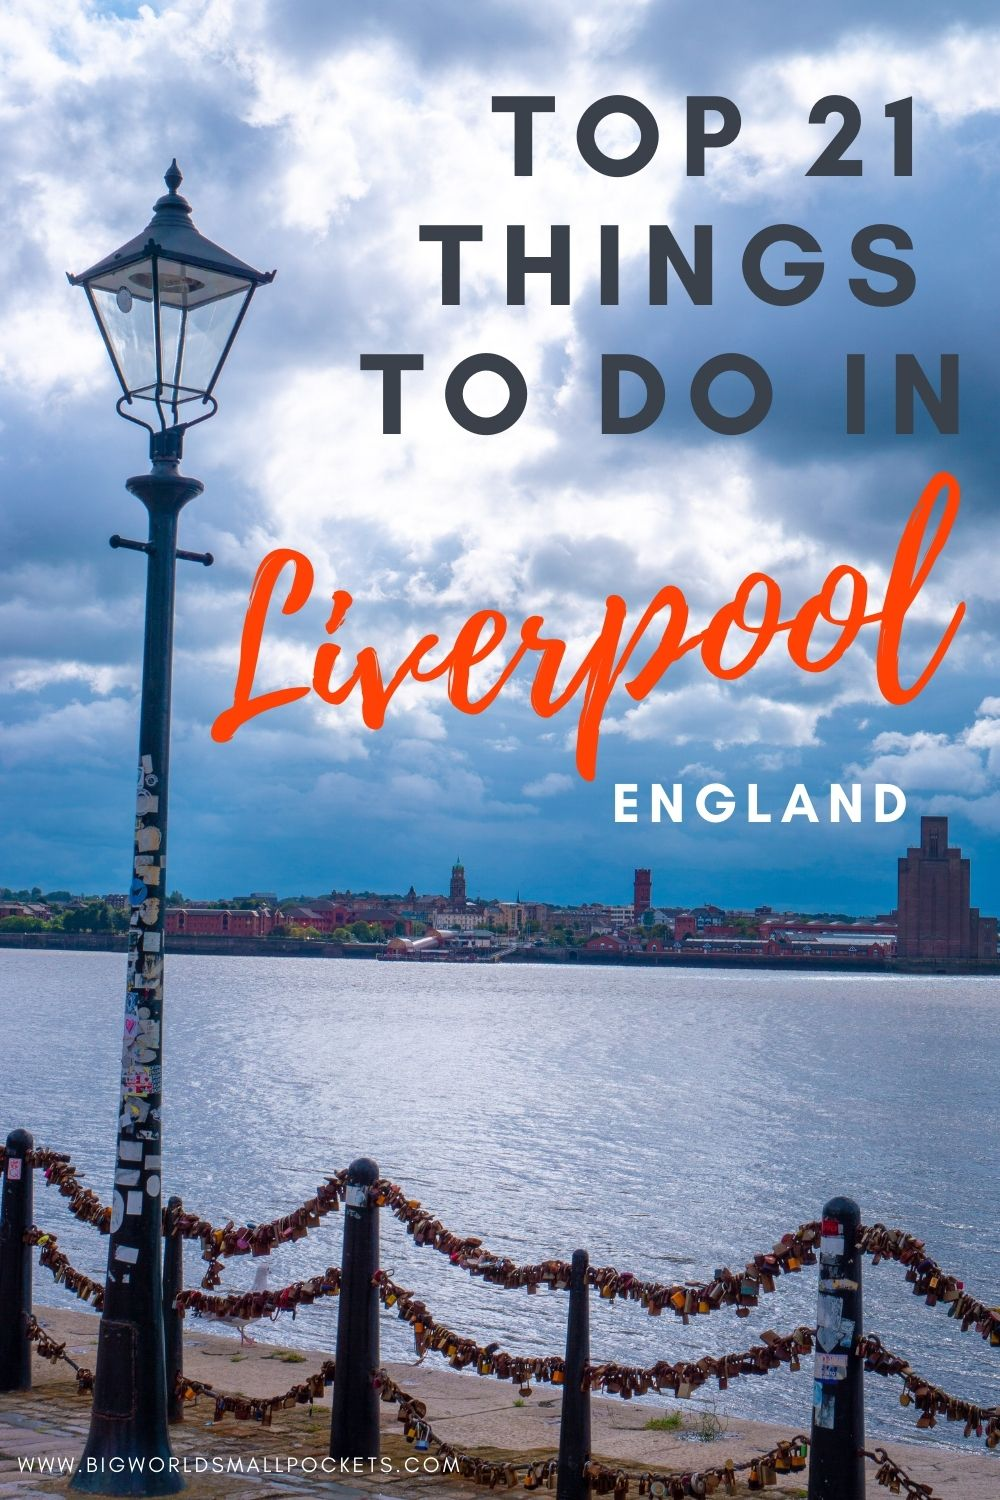 Top 21 Things To Do in Liverpool, England